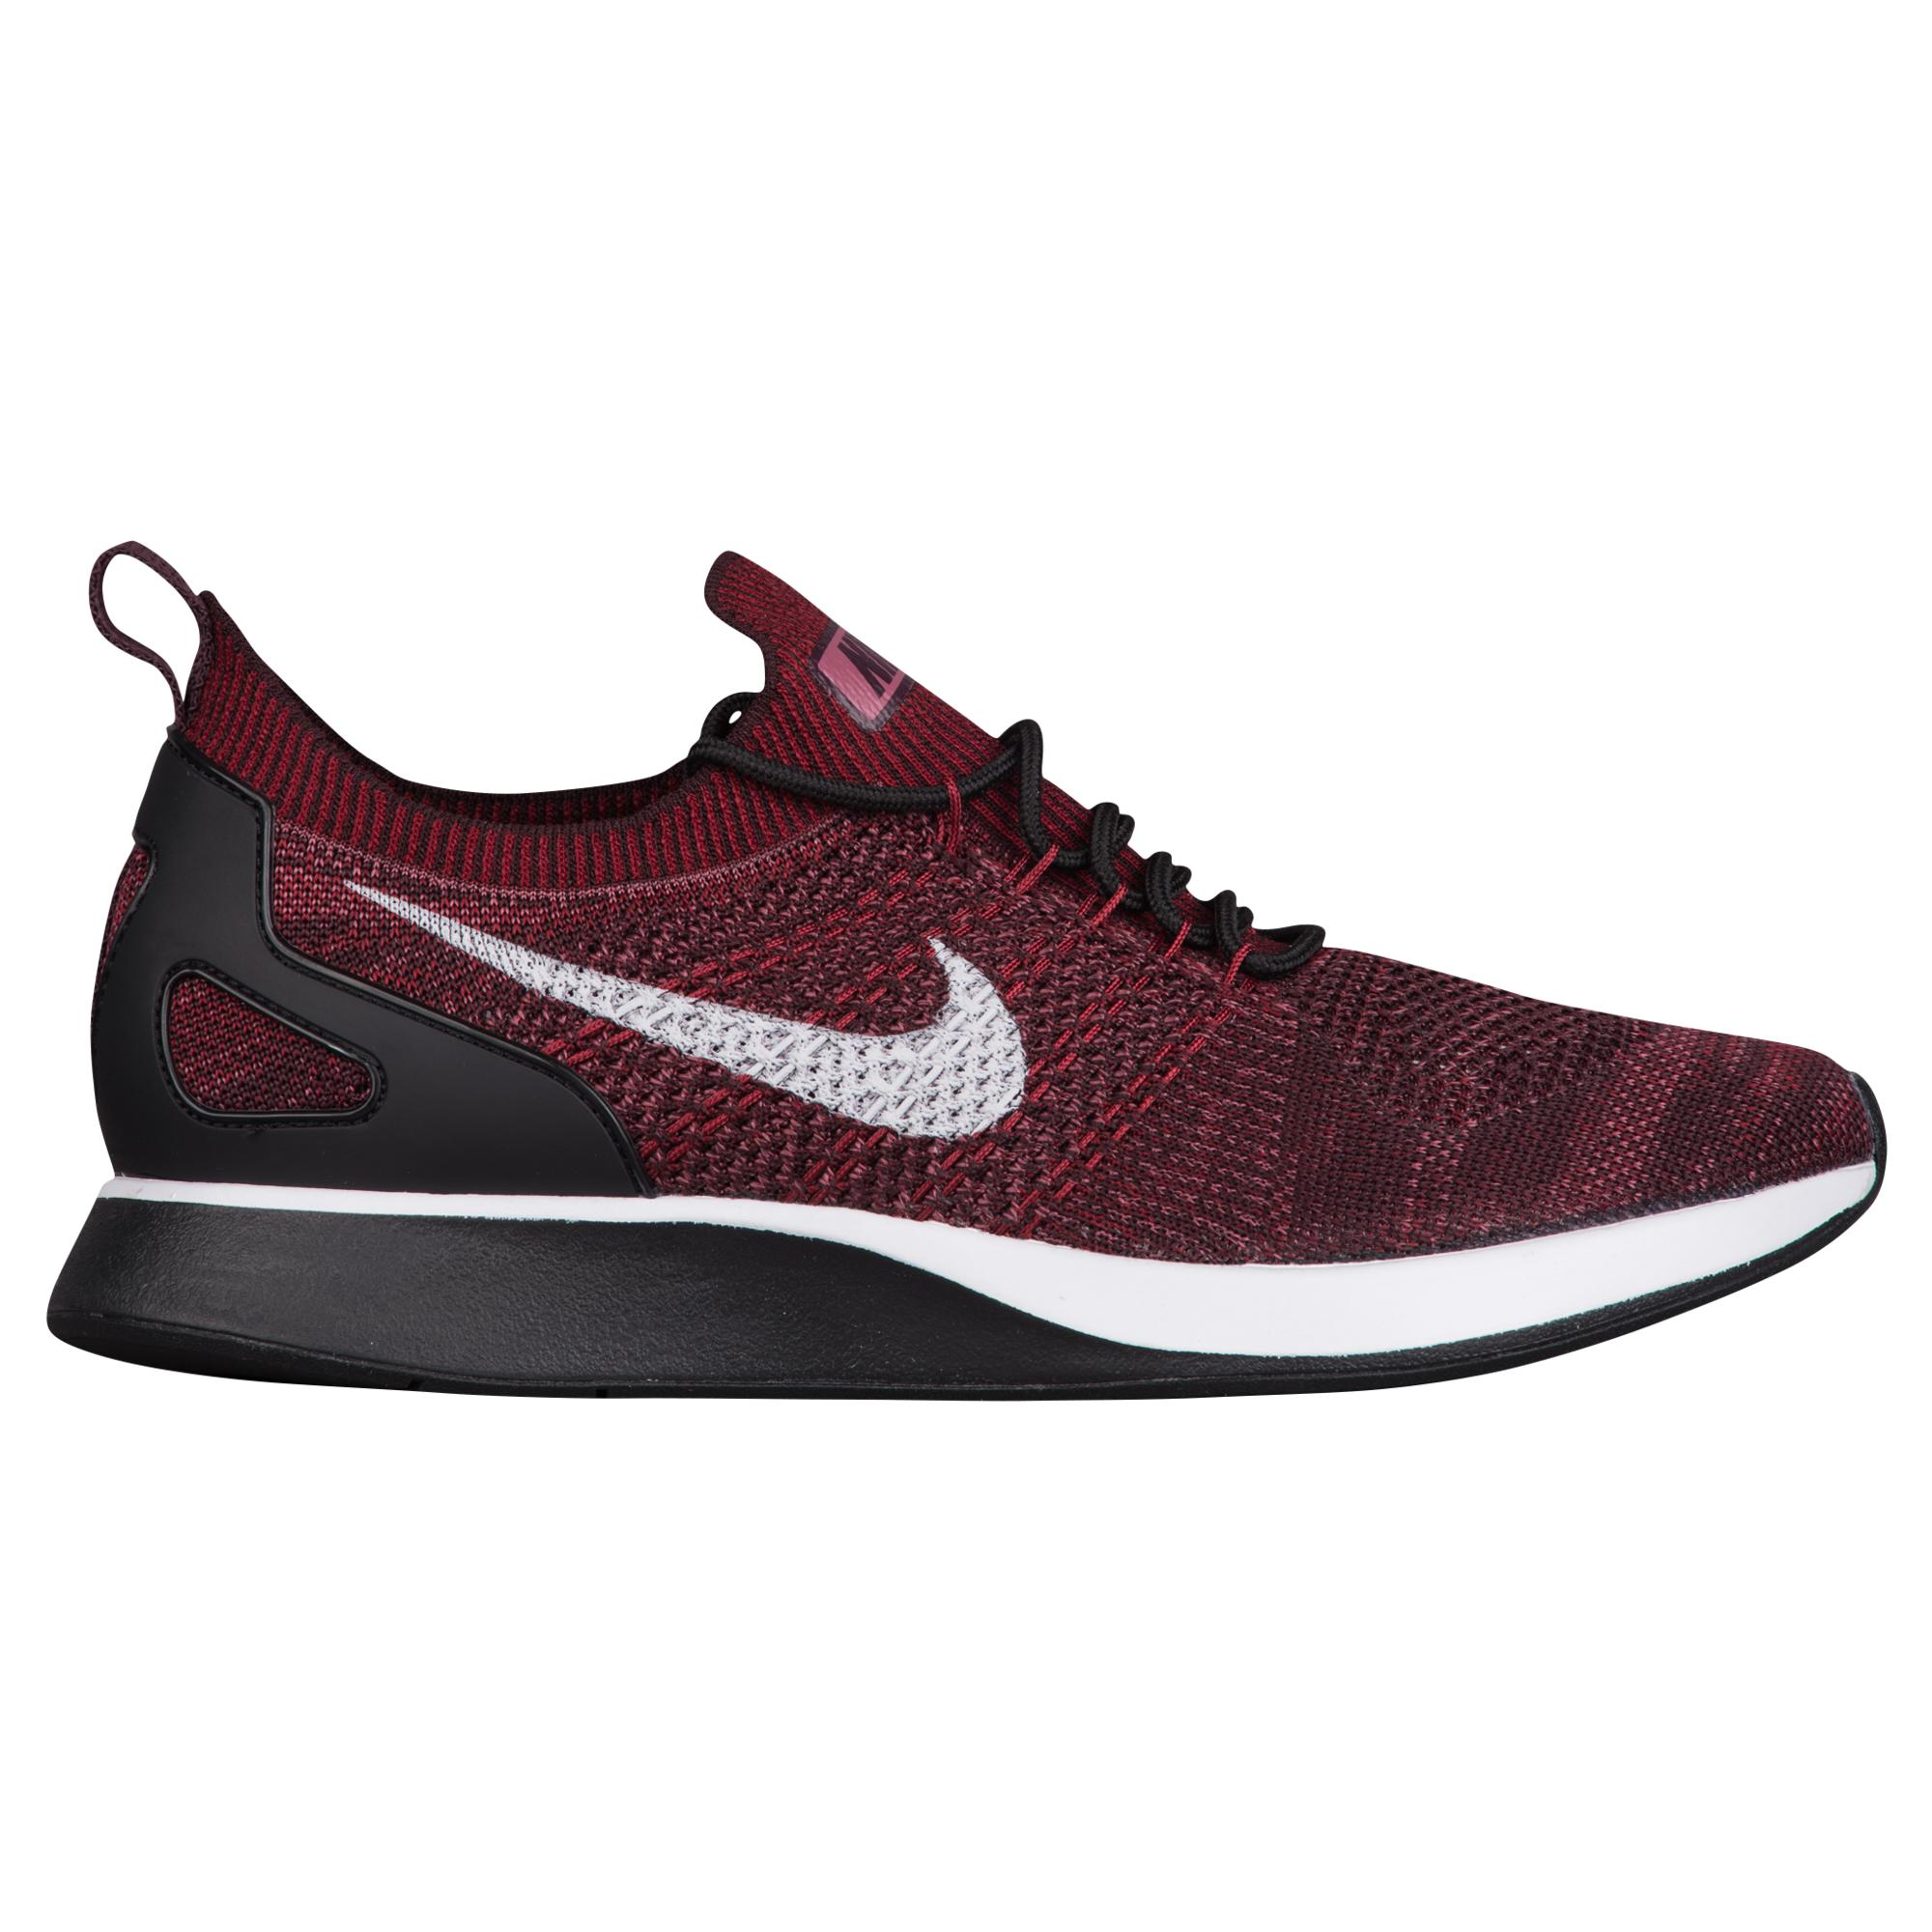 new style 2dab0 605a4 Nike Air Zoom Mariah Flyknit Racer in Red for Men - Save 4% - Lyst